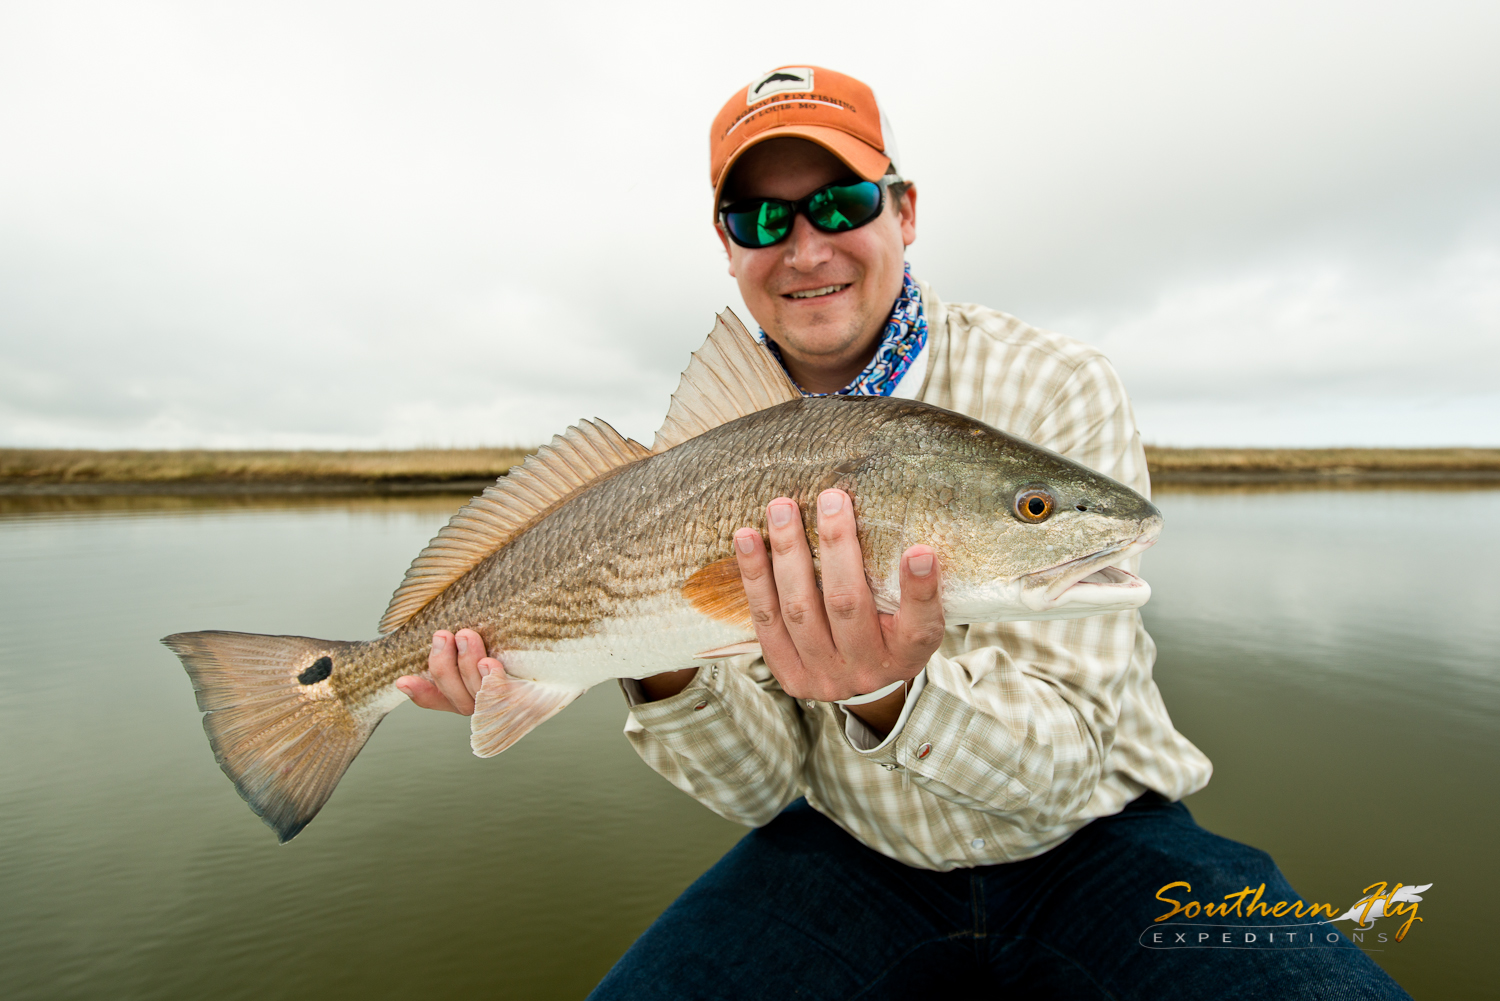 2016-12-28_SouthernFlyExpeditions_ChrisAndPaulConant-2.jpg